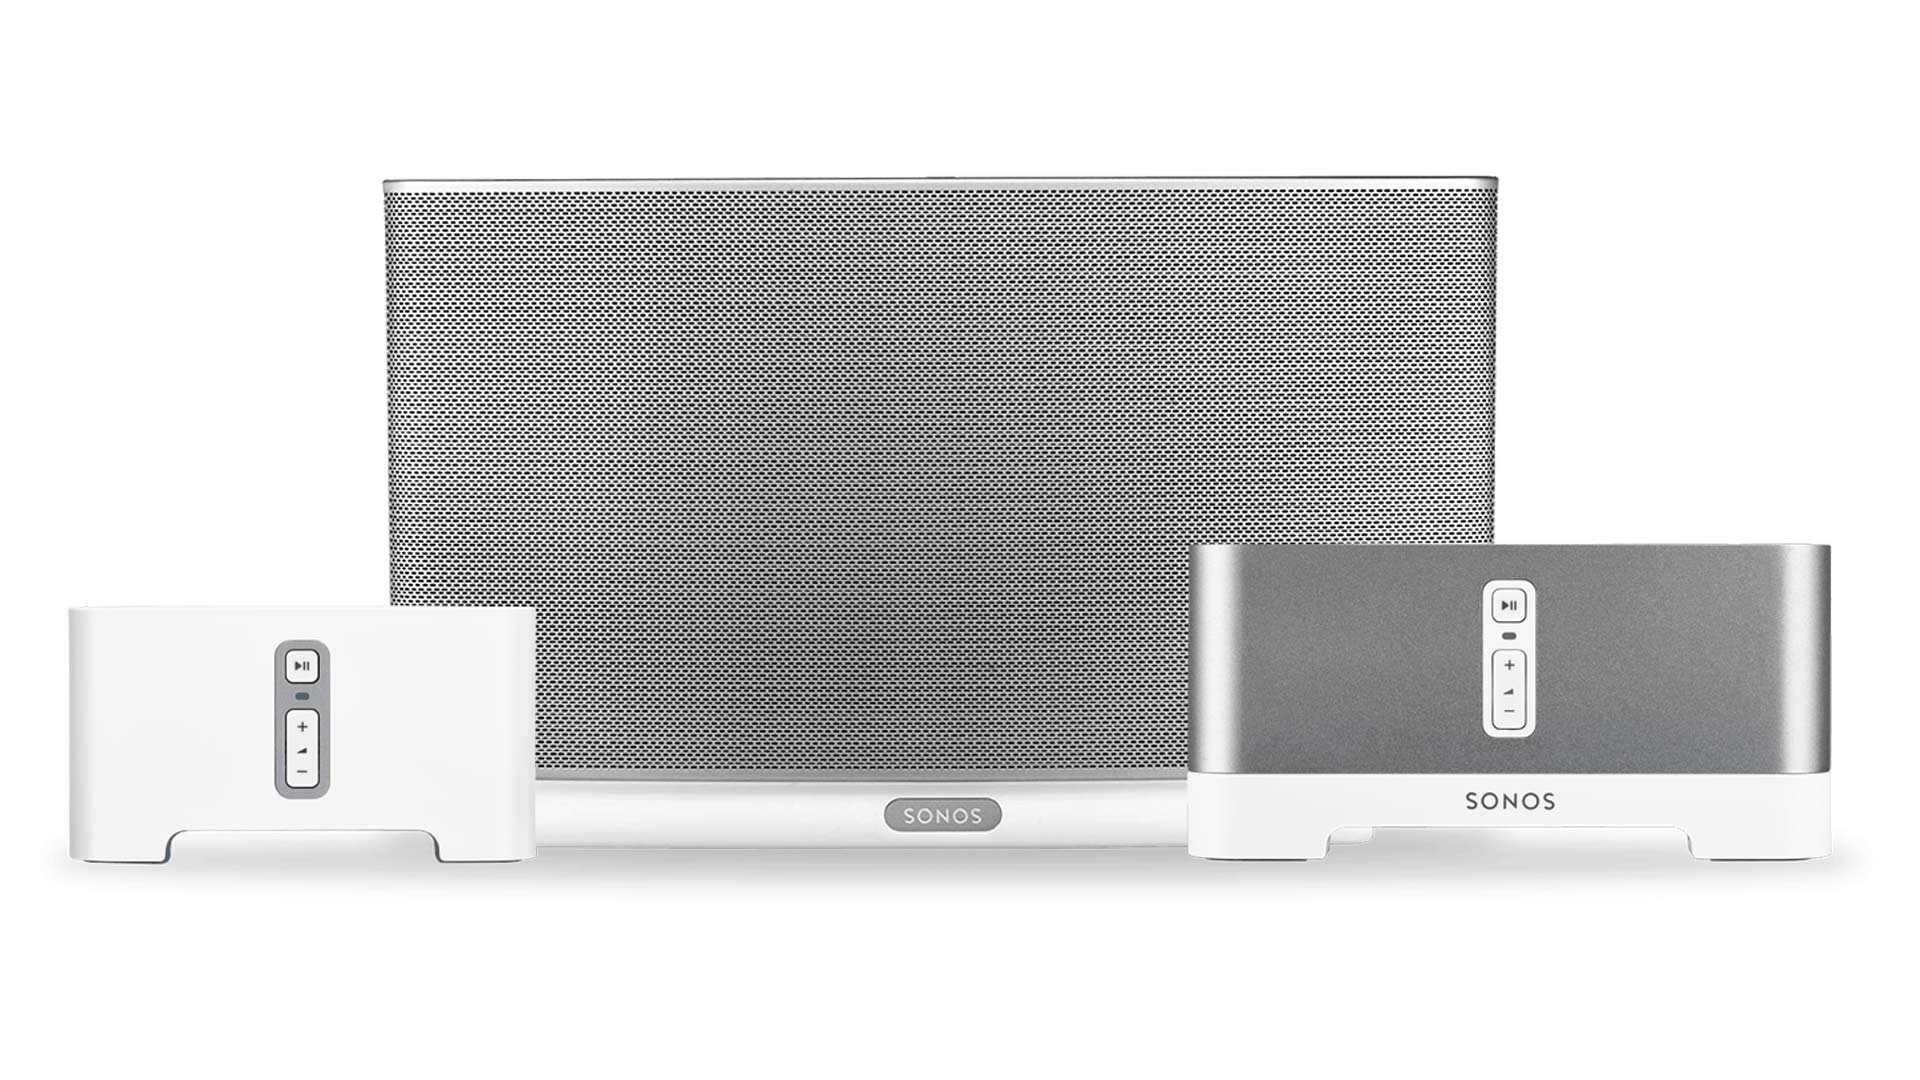 Sonos End Support For Legacy Products | Unilet Sound & Vision